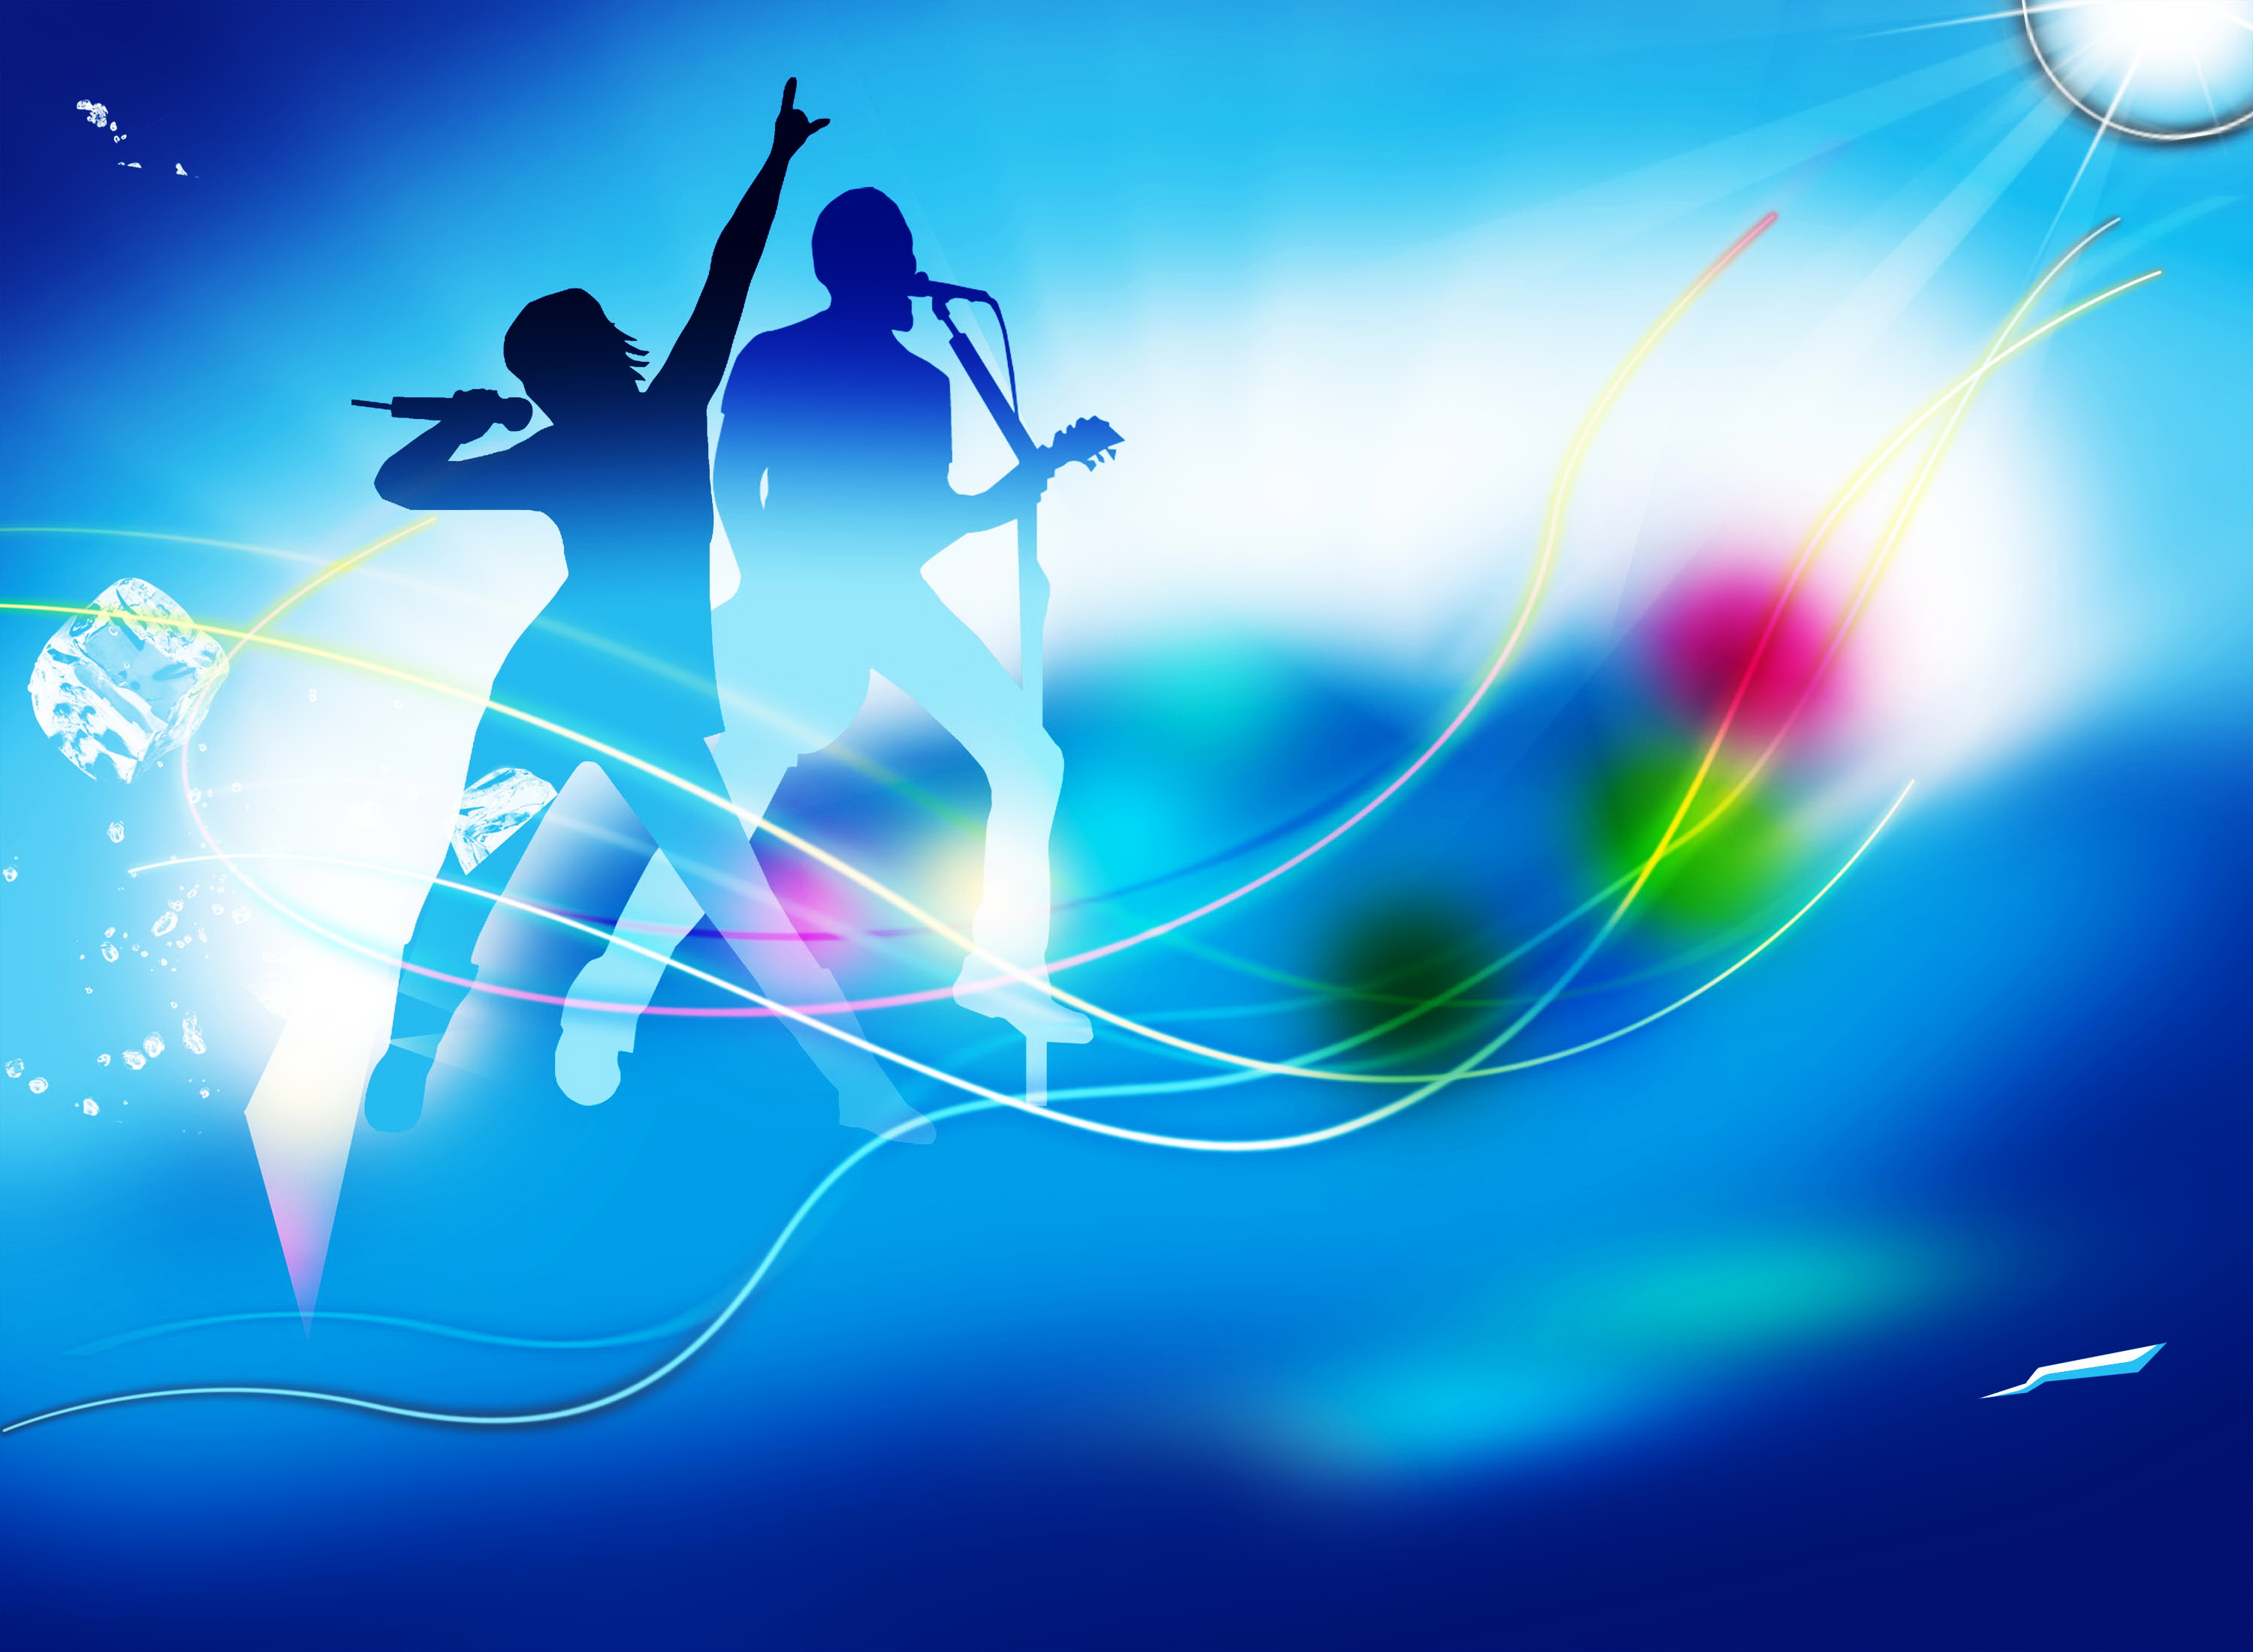 music k songs to sing background image  music  k  song